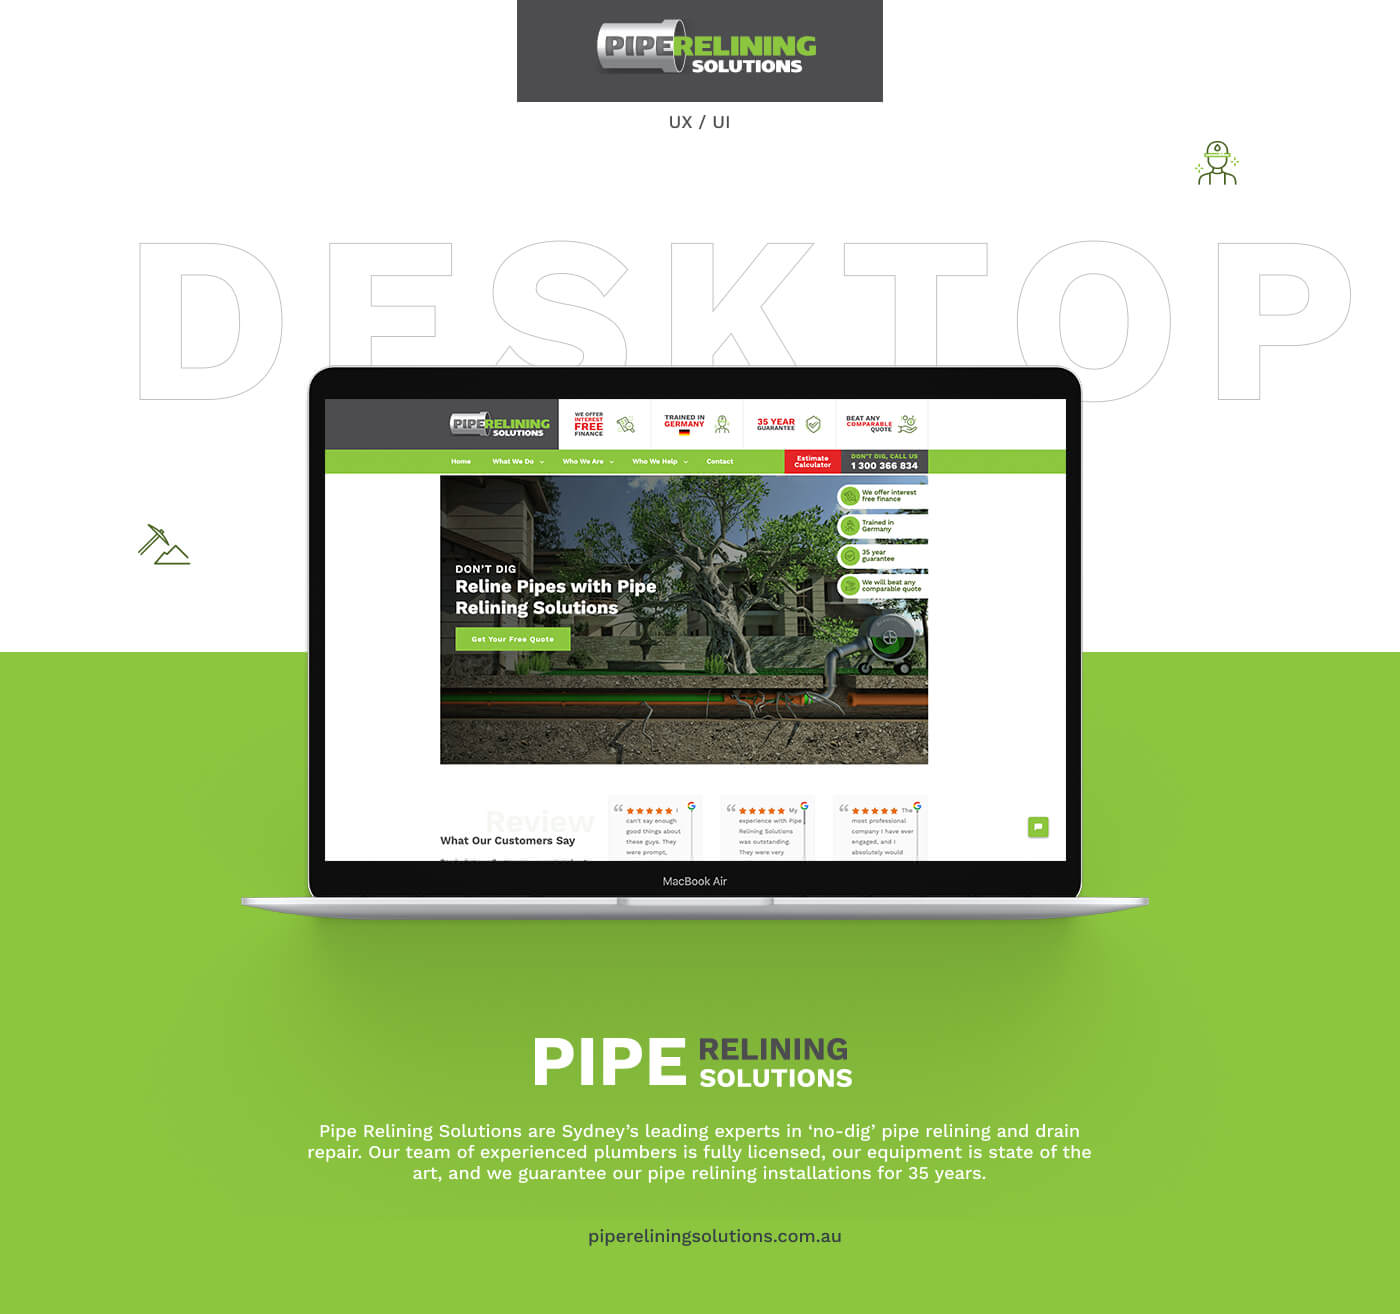 Pipe Relining Solutions